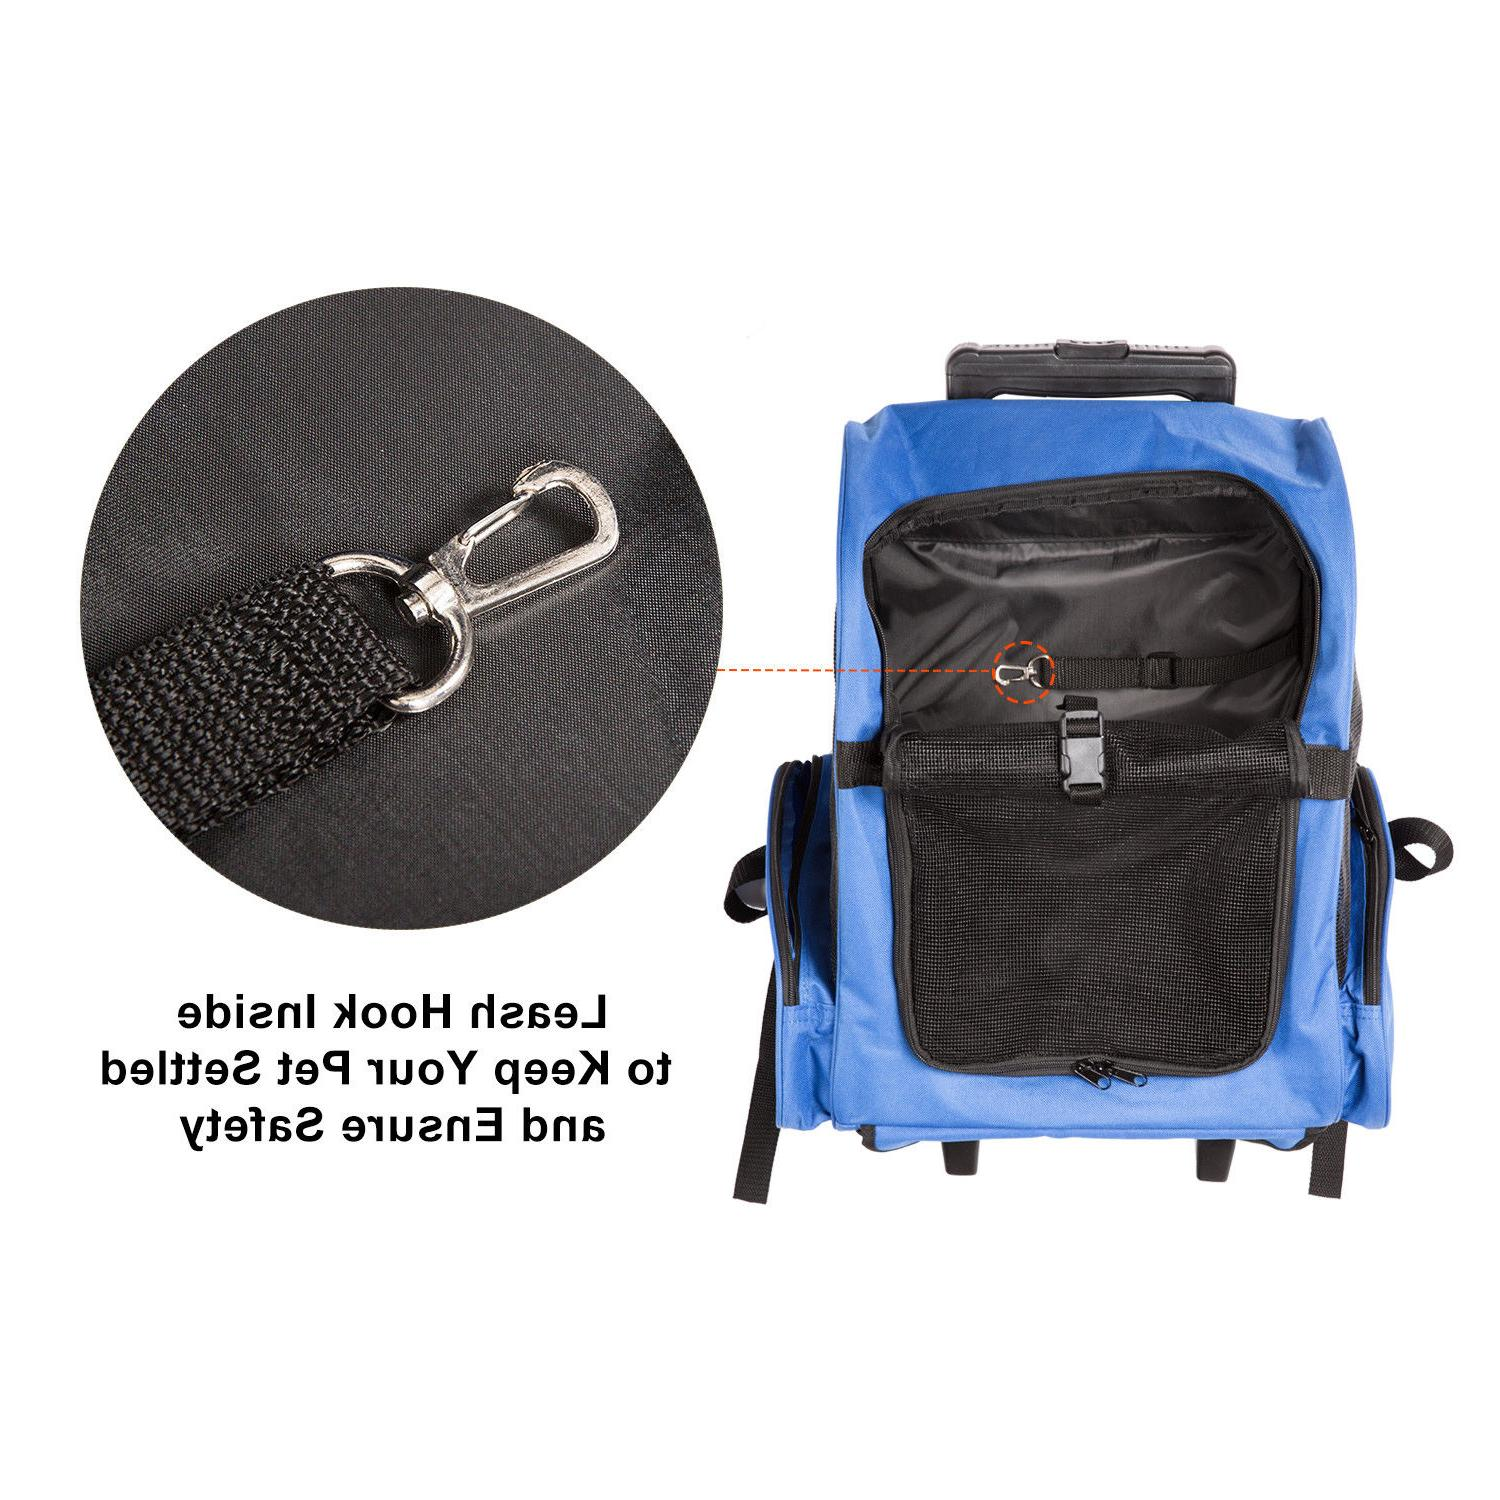 Pet Rolling Luggage Bags pproved